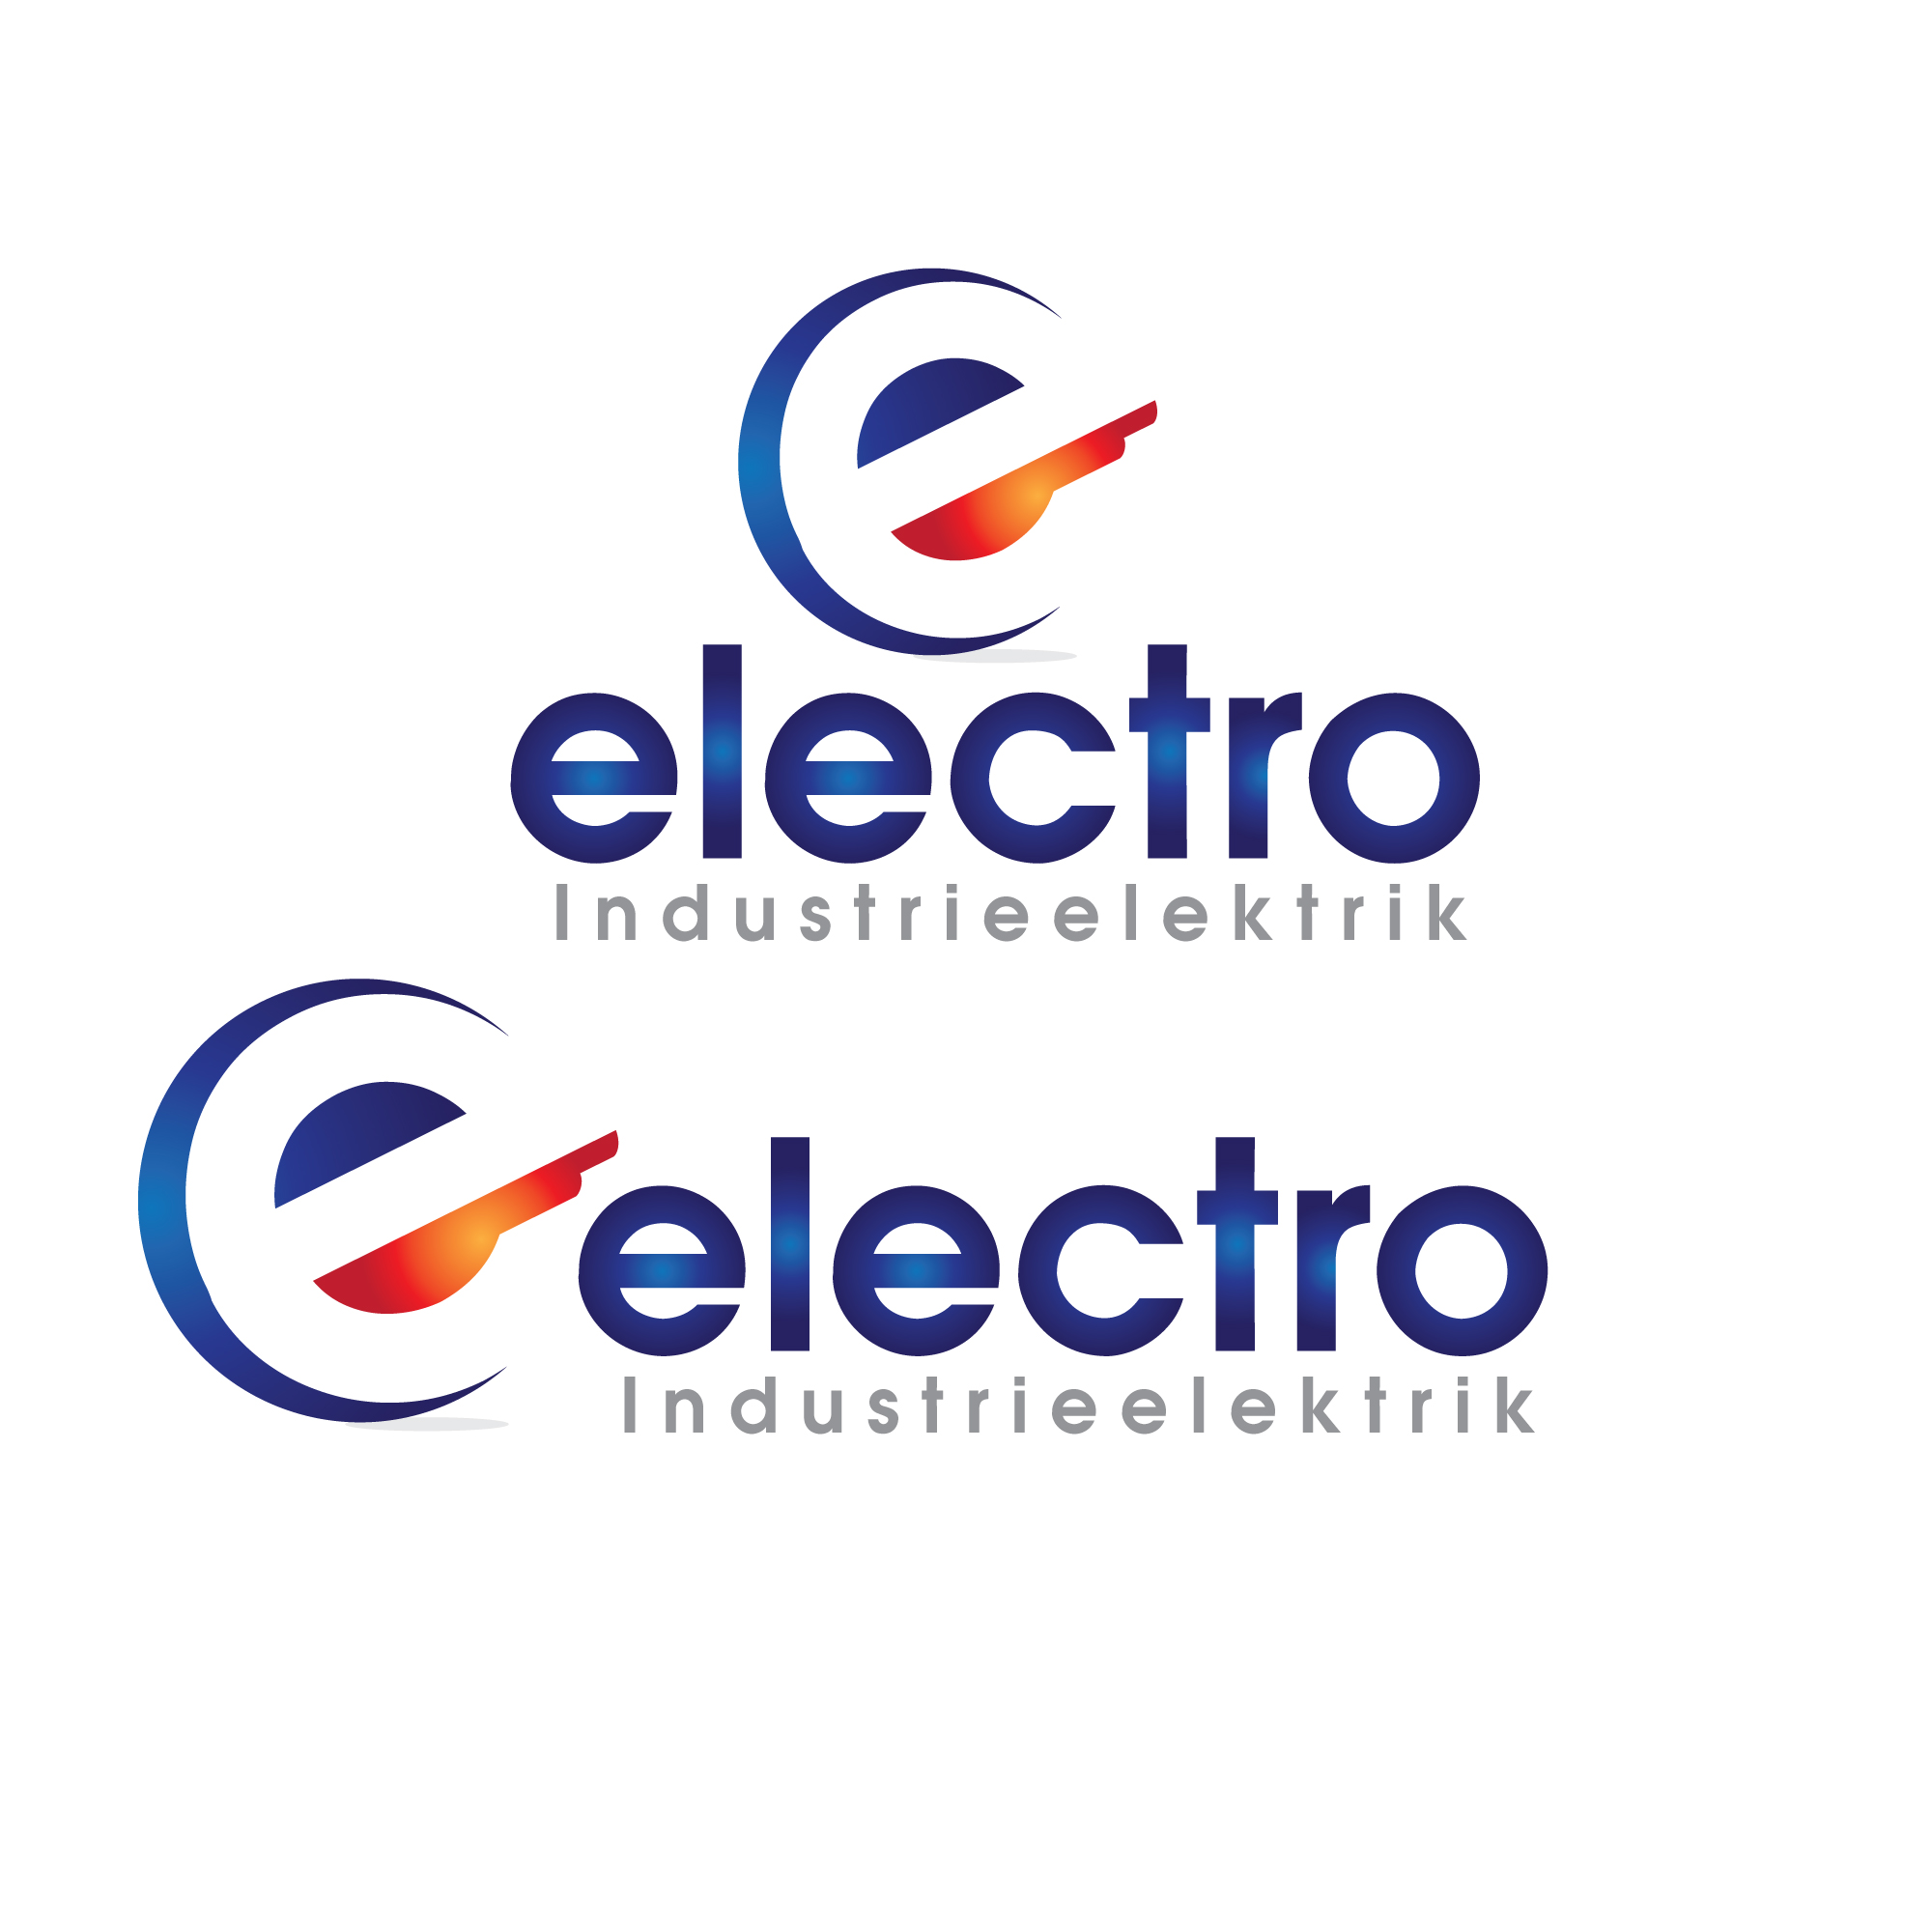 Logo Design by stormbighit - Entry No. 72 in the Logo Design Contest Unique Logo Design Wanted for Electro Industrieelektrik.